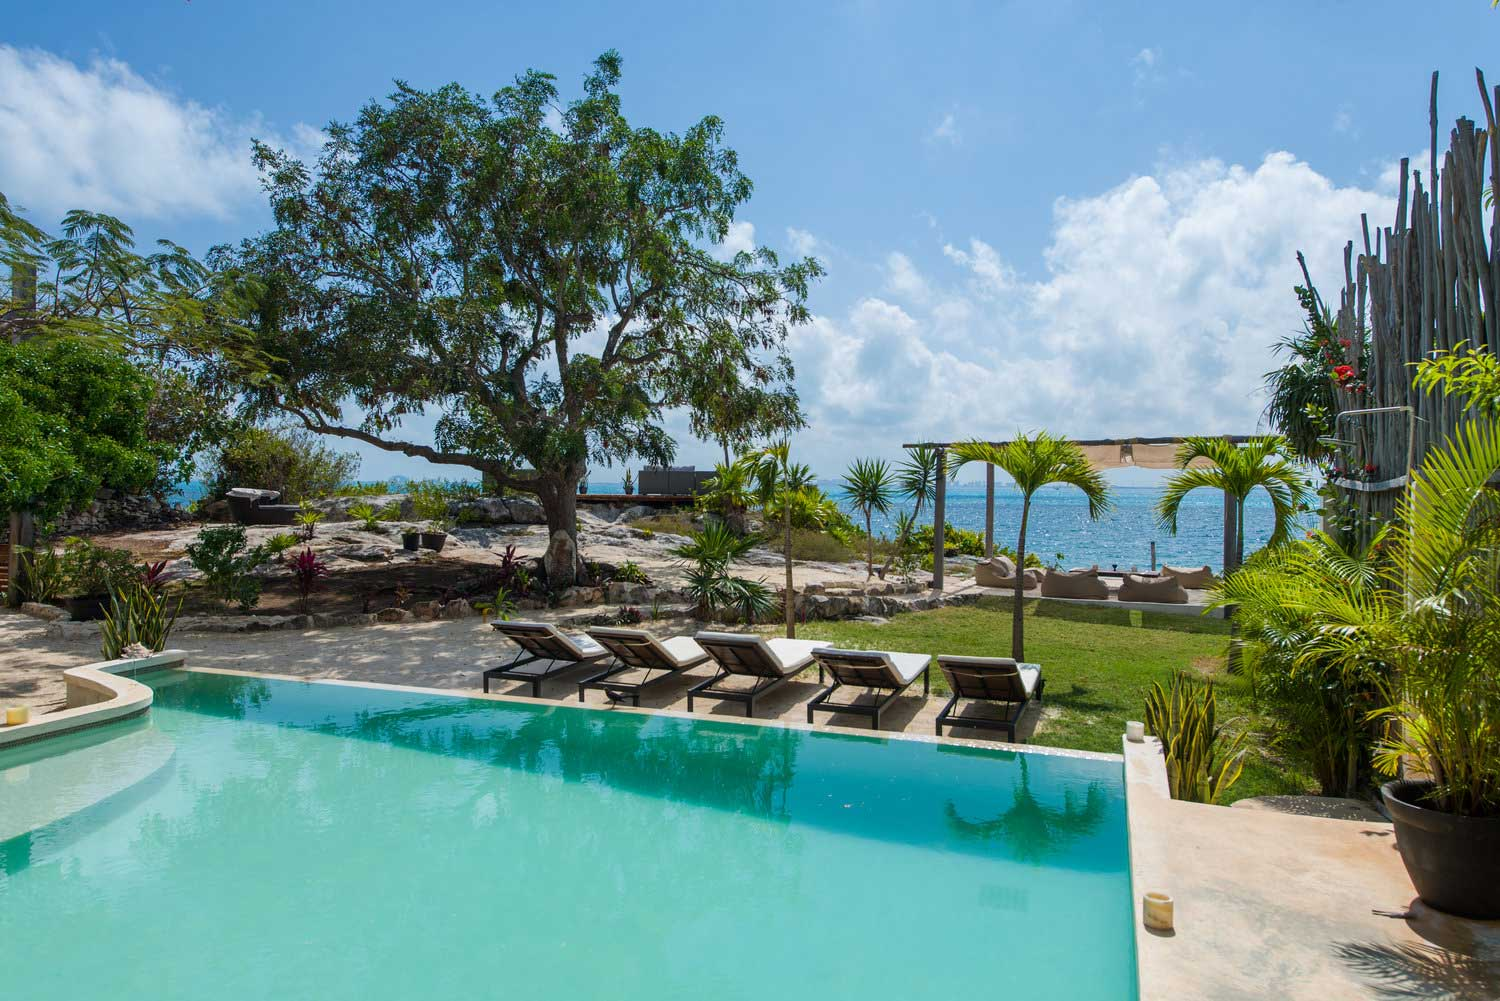 Casa Coco Pool with Beach View